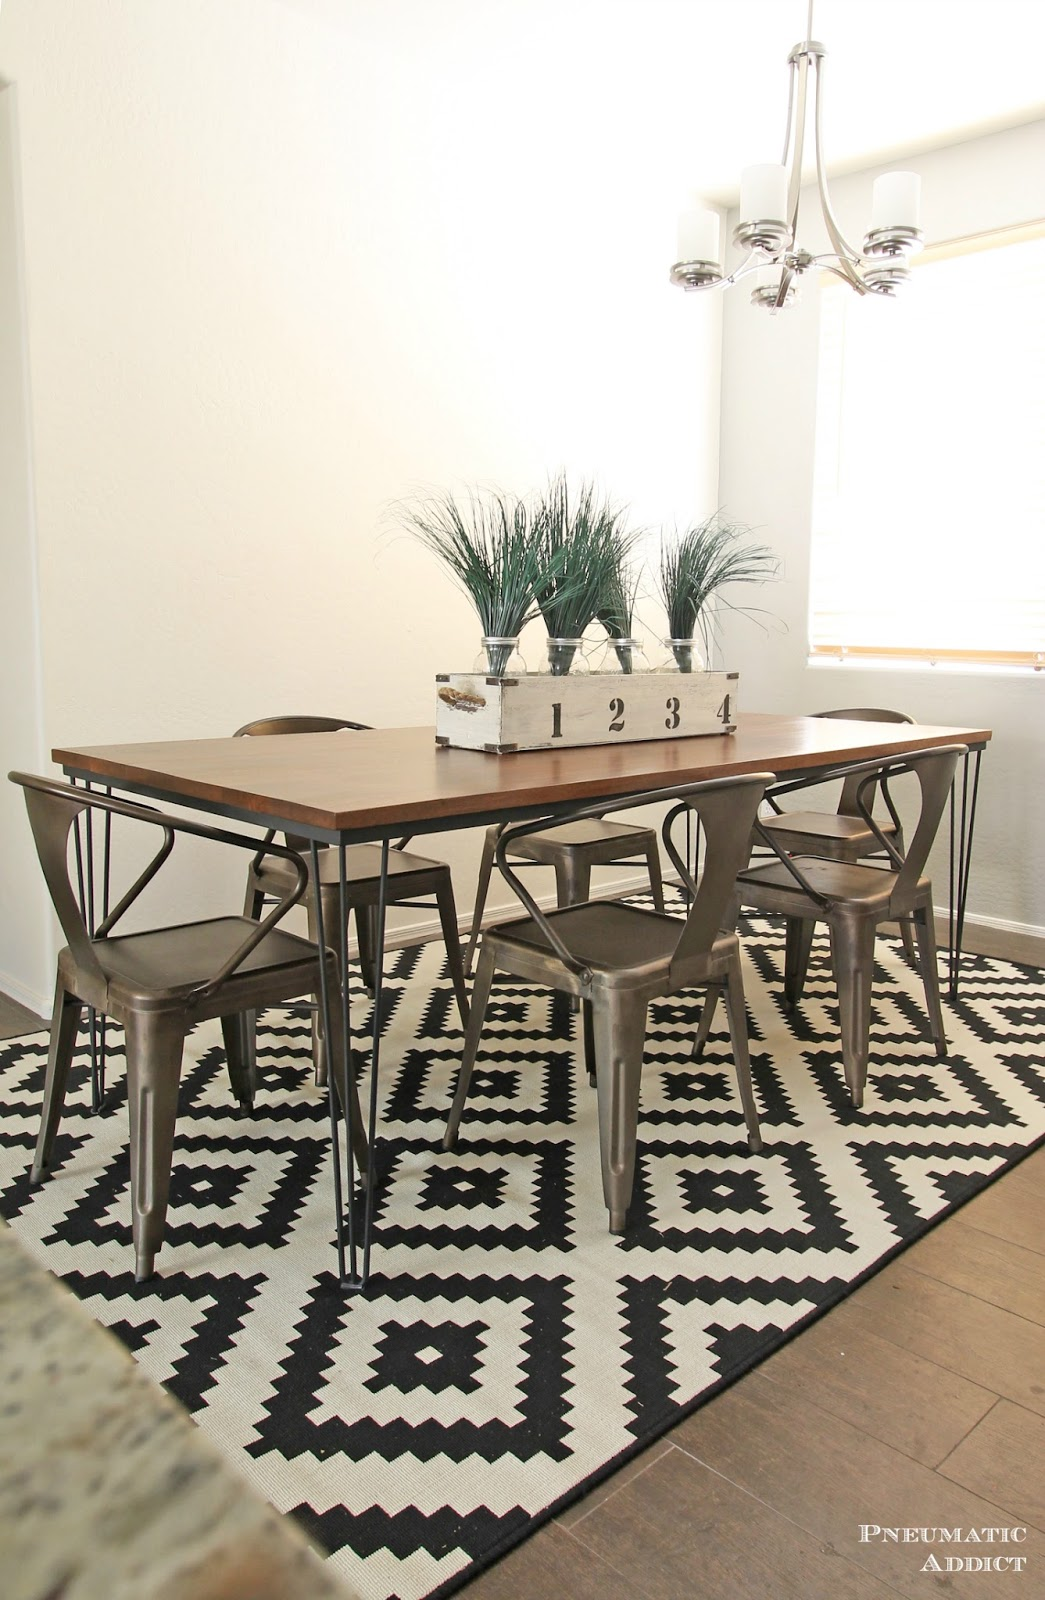 pneumatic addict : large hairpin dining table